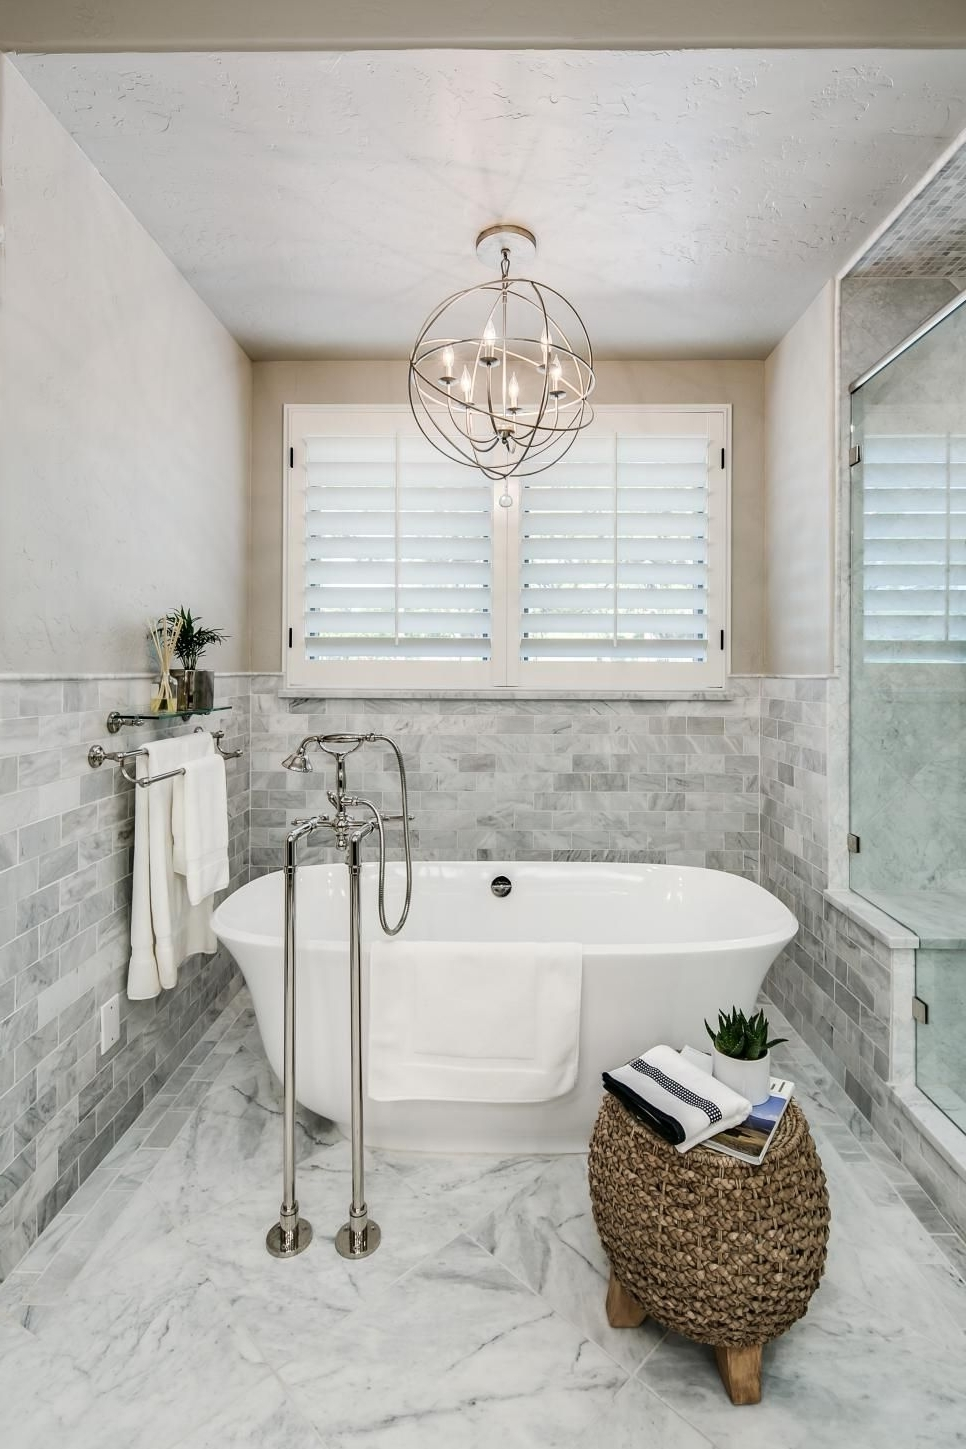 Most Recent Modern Bathroom Chandeliers Within A Metal Orb Chandelier Is Centered Above The Freestanding Tub In (View 4 of 15)